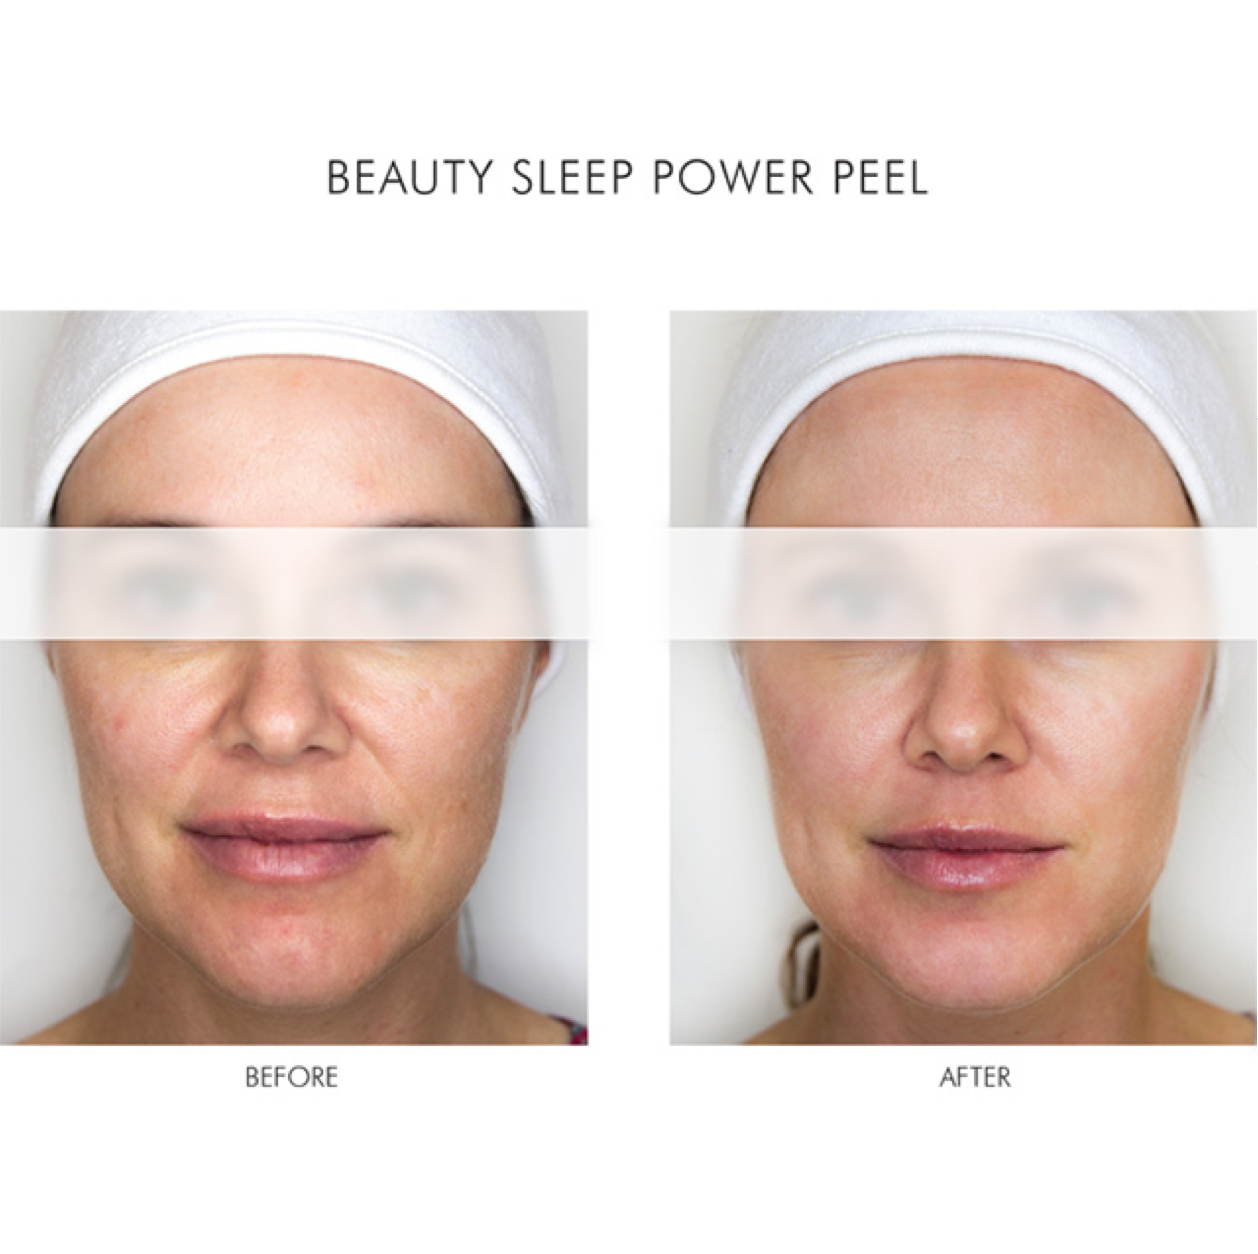 Alpha-H Beauty Sleep Power Peel Before and After